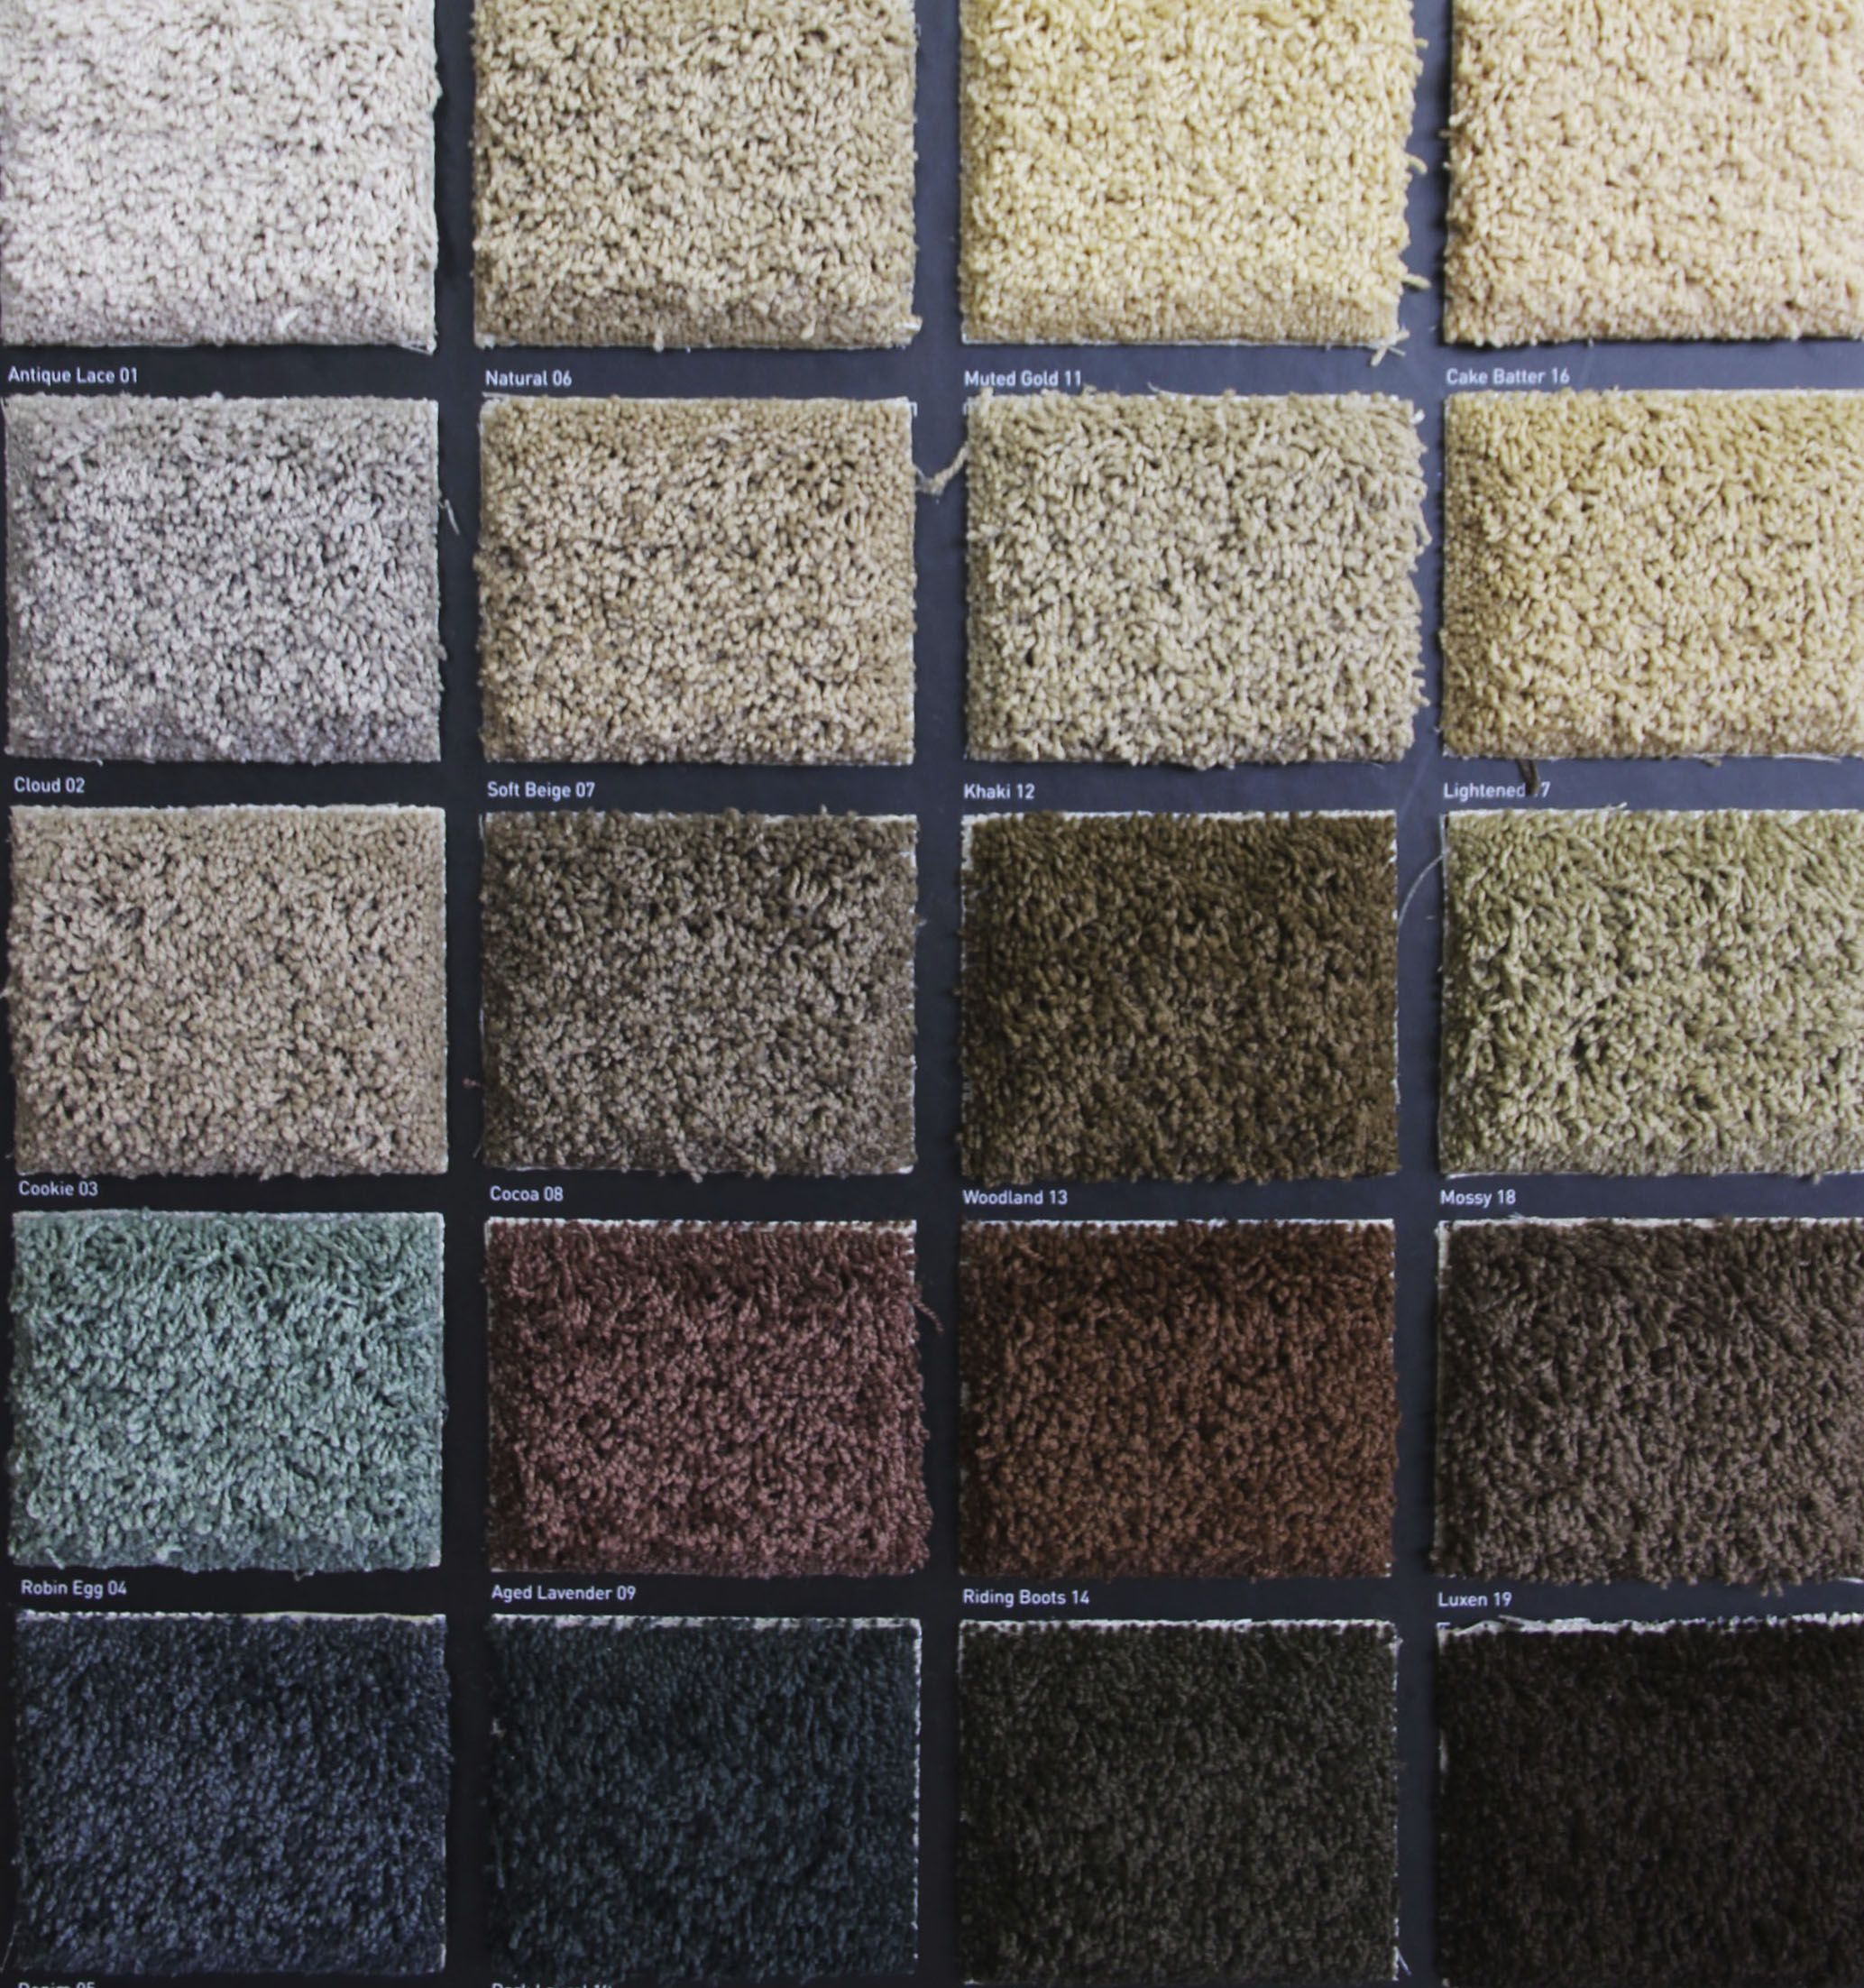 stainmaster carpet protection - Stainmaster Carpet